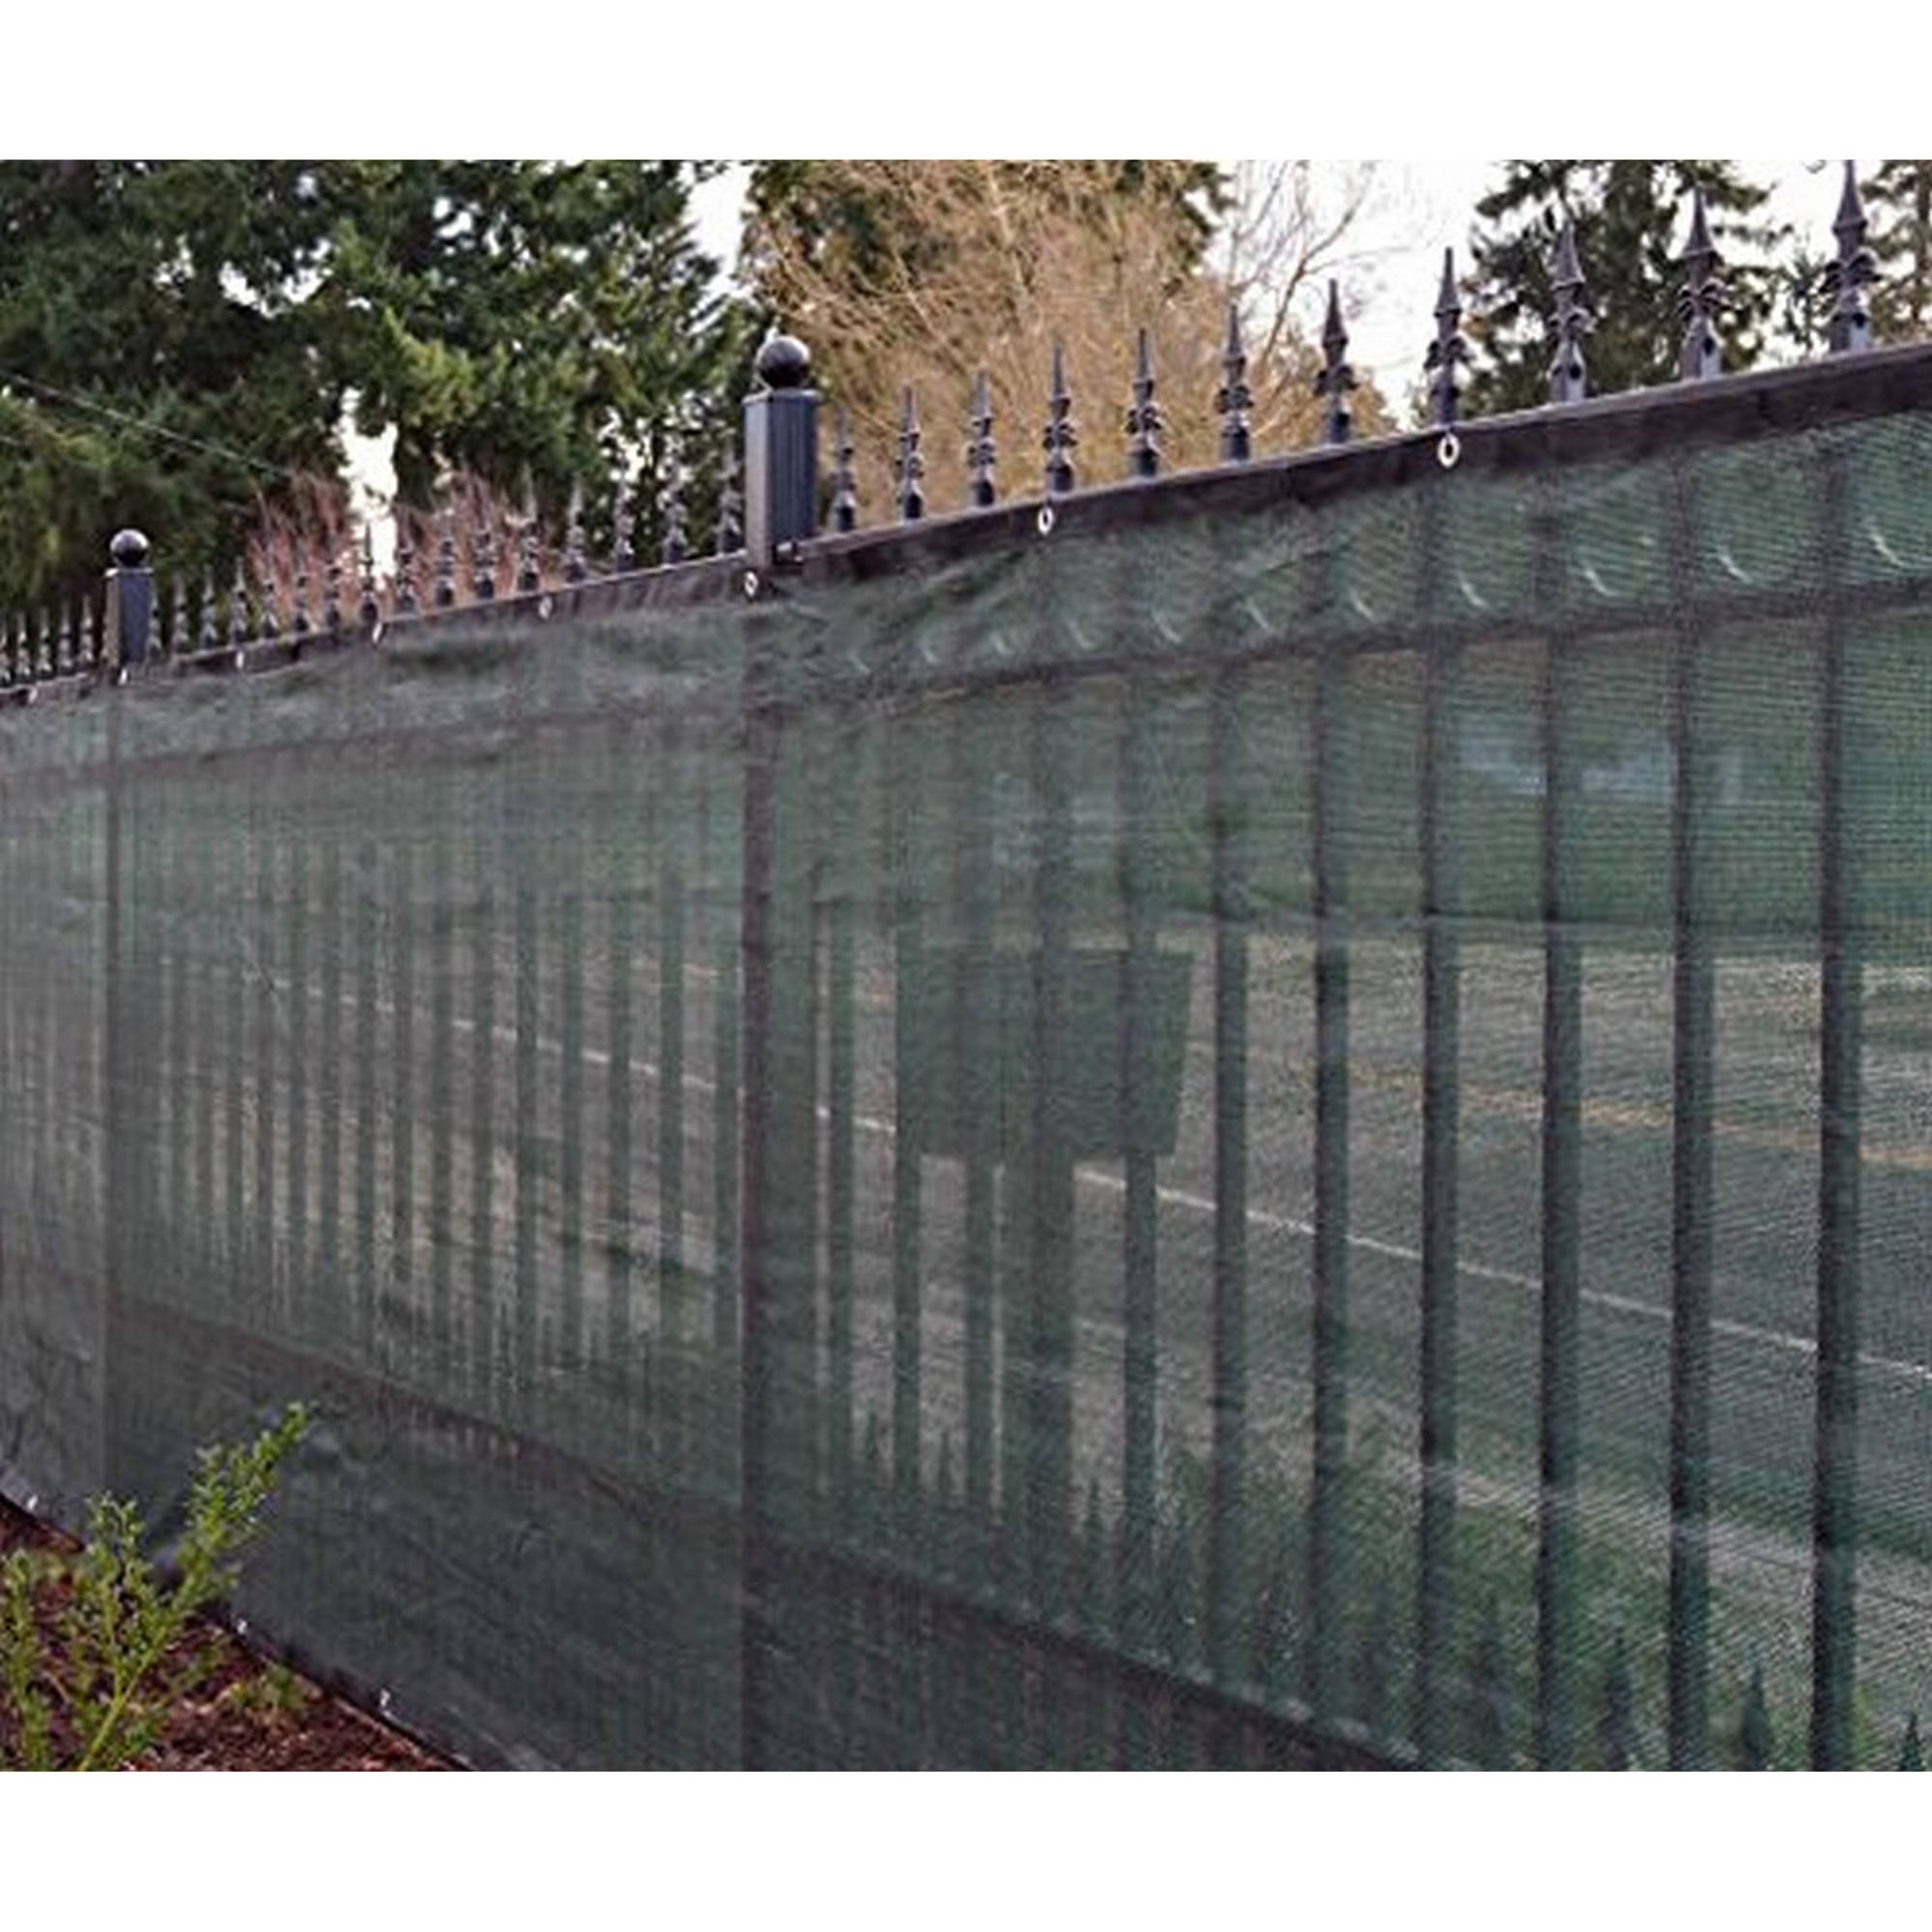 Aleko 5' x 50' Dark Green Fence Privacy Screen Windscreen Shade Cover Mesh Fabric